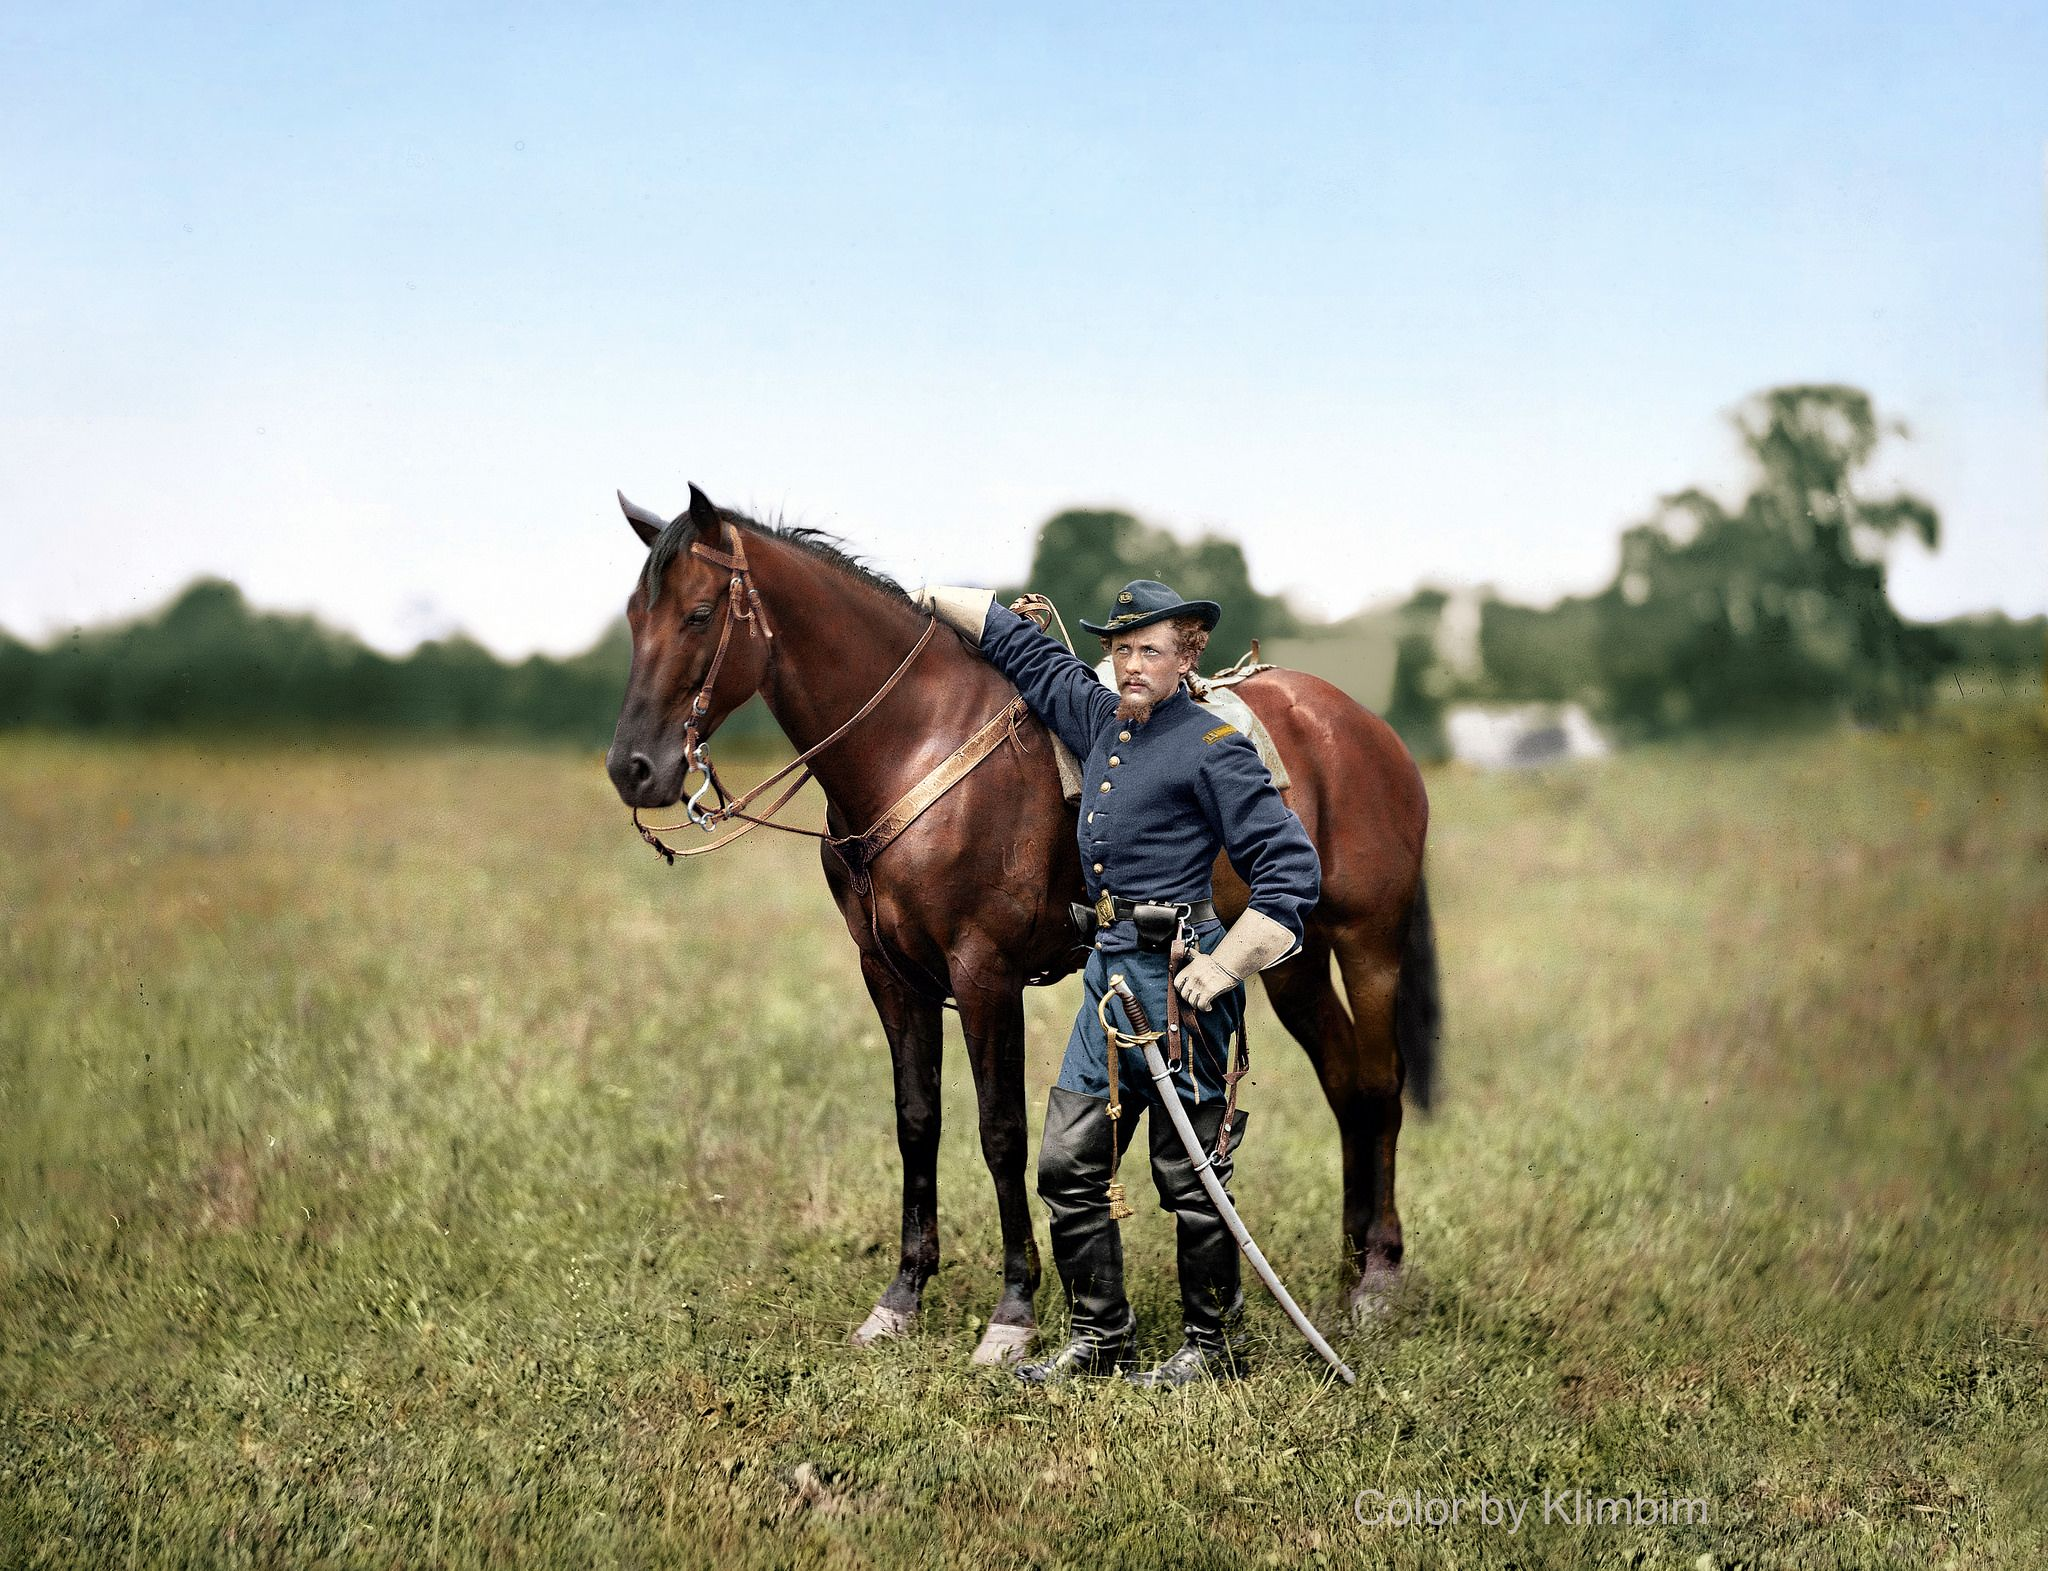 """https://flic.kr/p/N6yHDS 